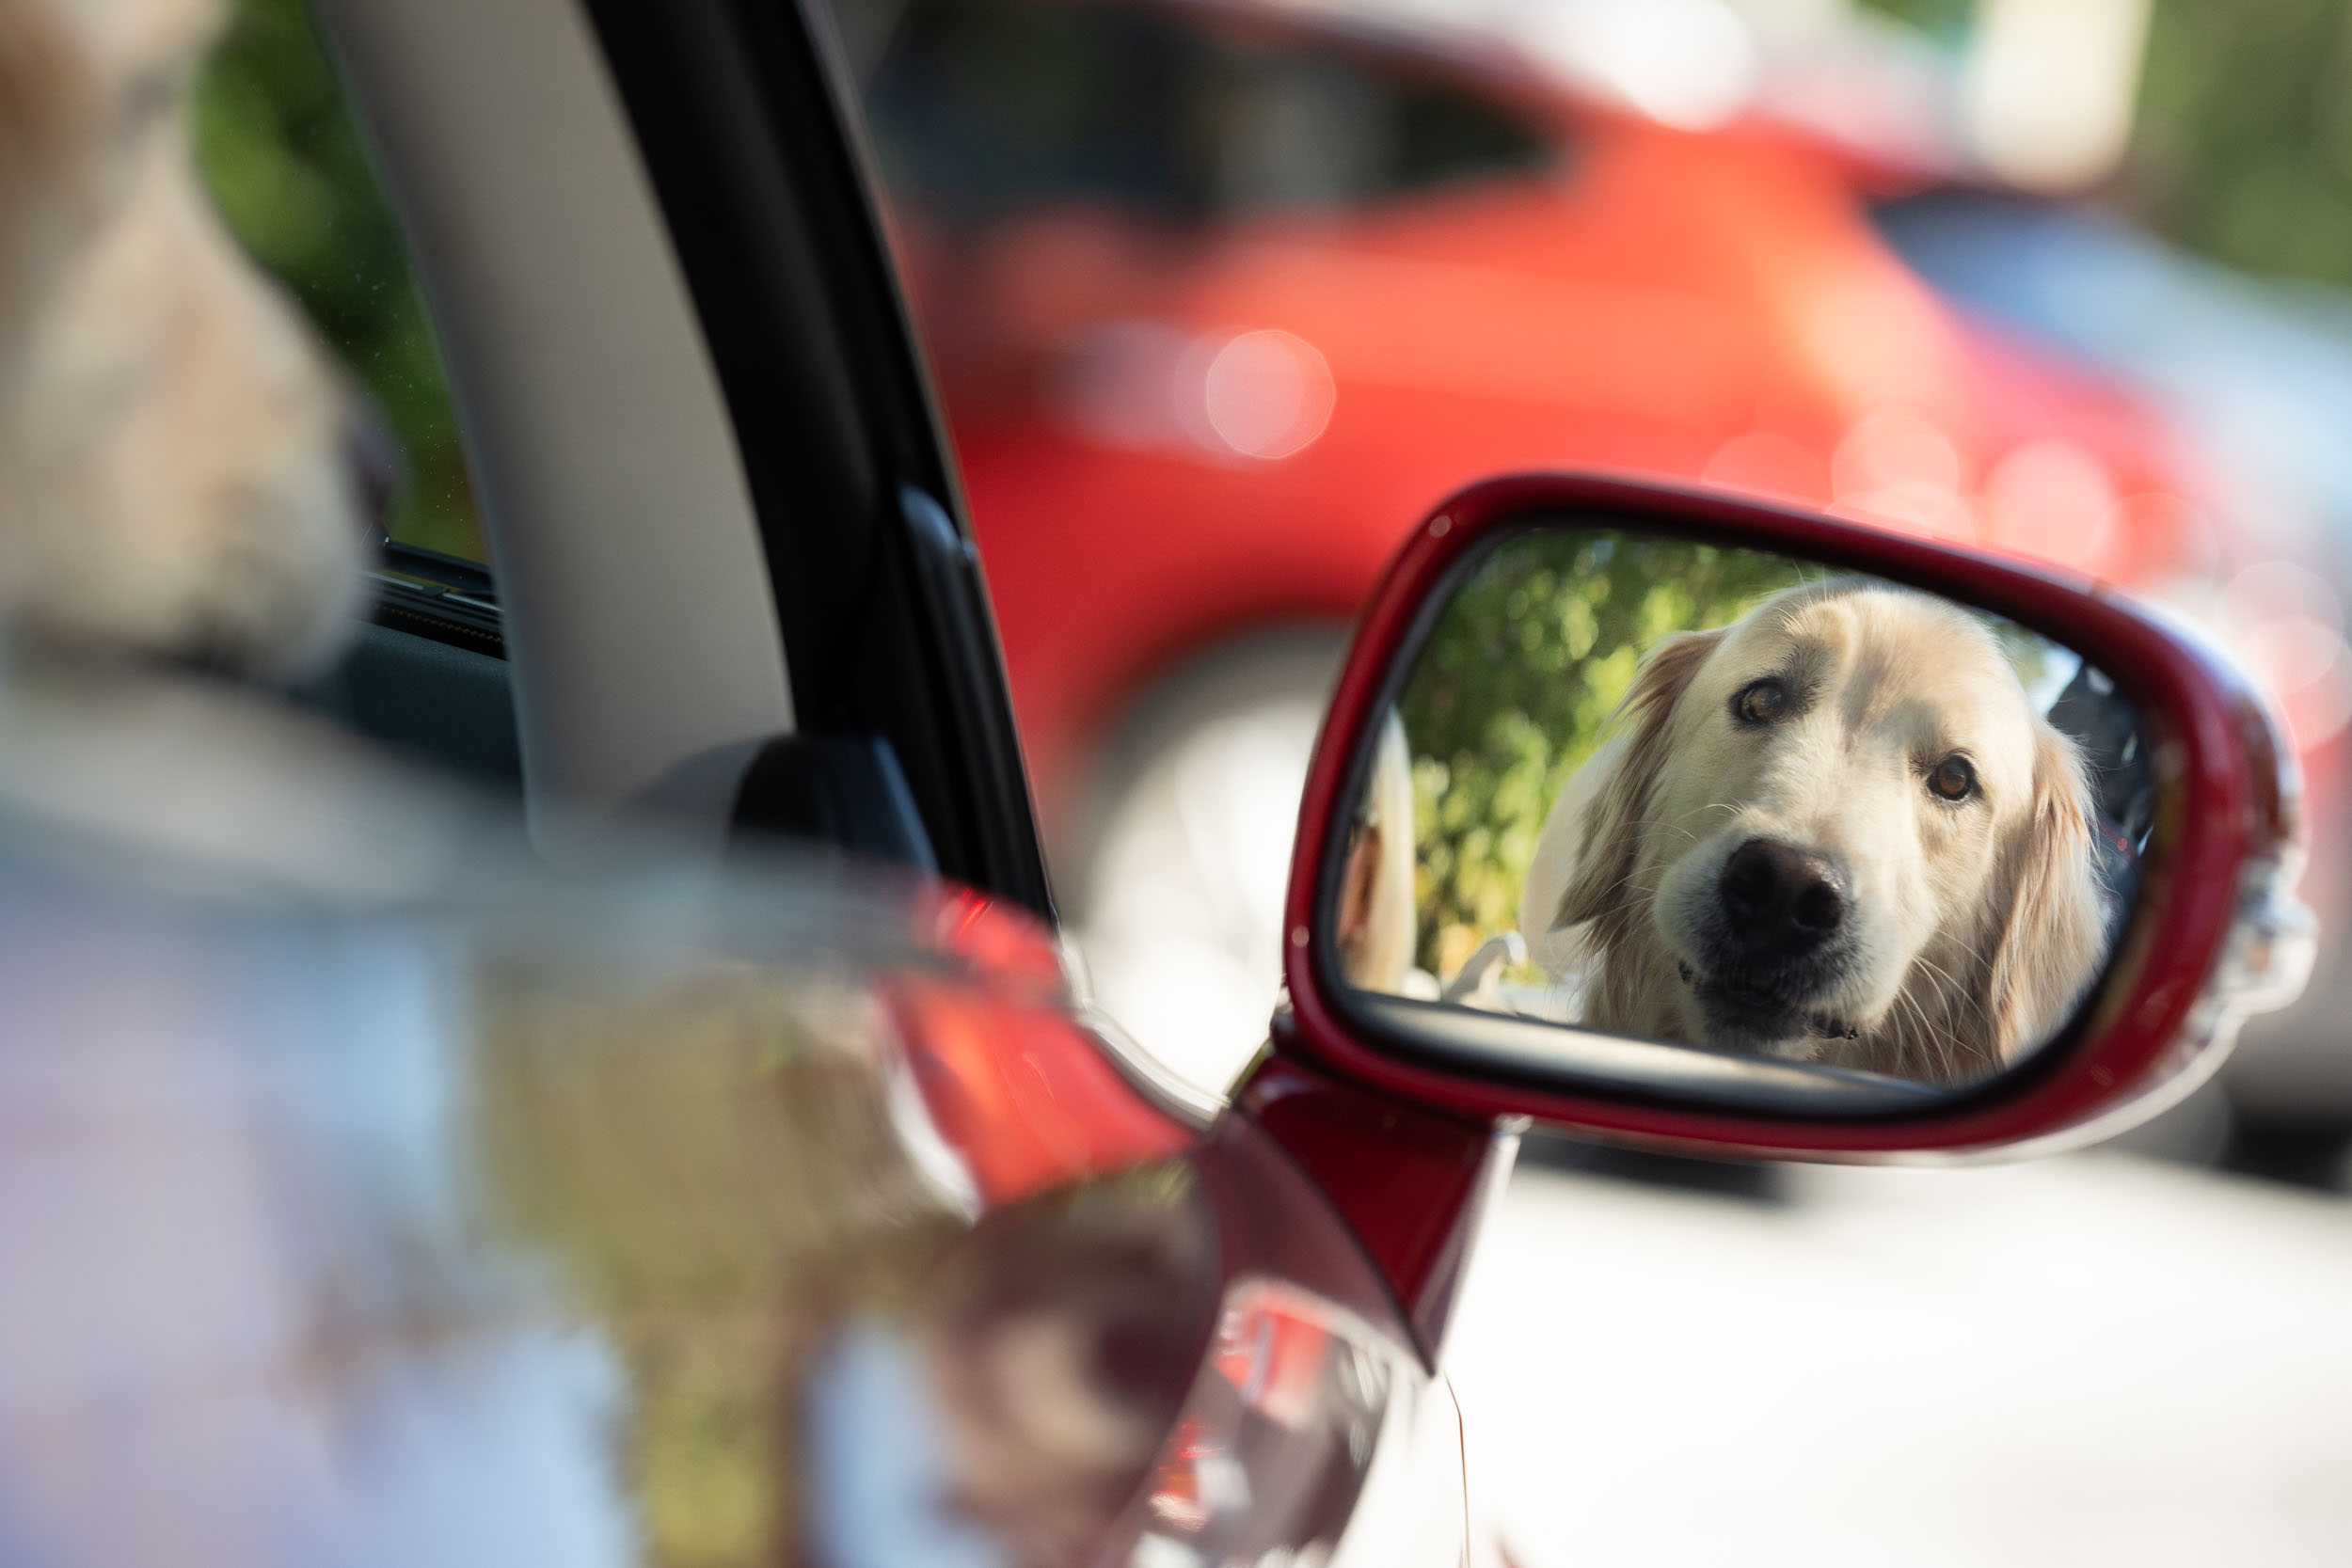 Florida Photography | dog in car mirror | Steven Martine